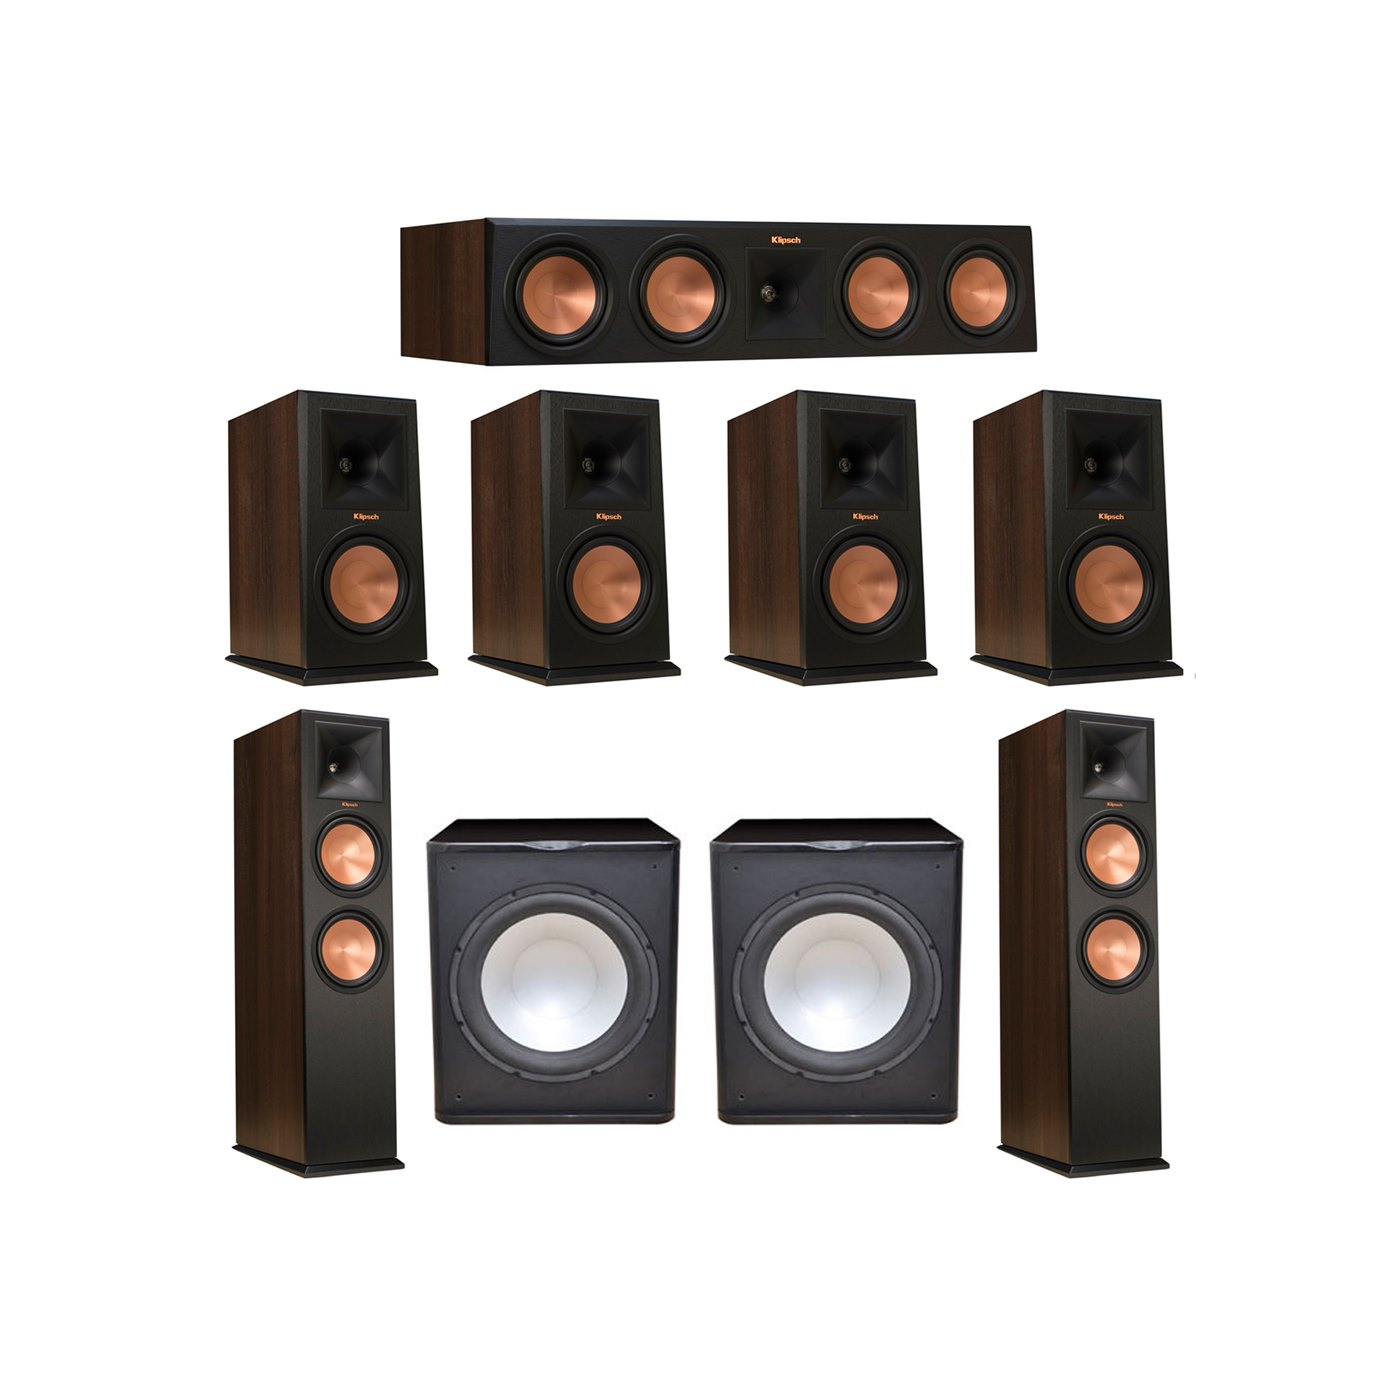 Klipsch 7.2 Walnut System with 2 RP-280F Tower Speakers, 1 RP-450C Center Speaker, 4 Klipsch RP-160M Bookshelf Speakers, 2 Premier Acoustic PA-150 Subwoofer